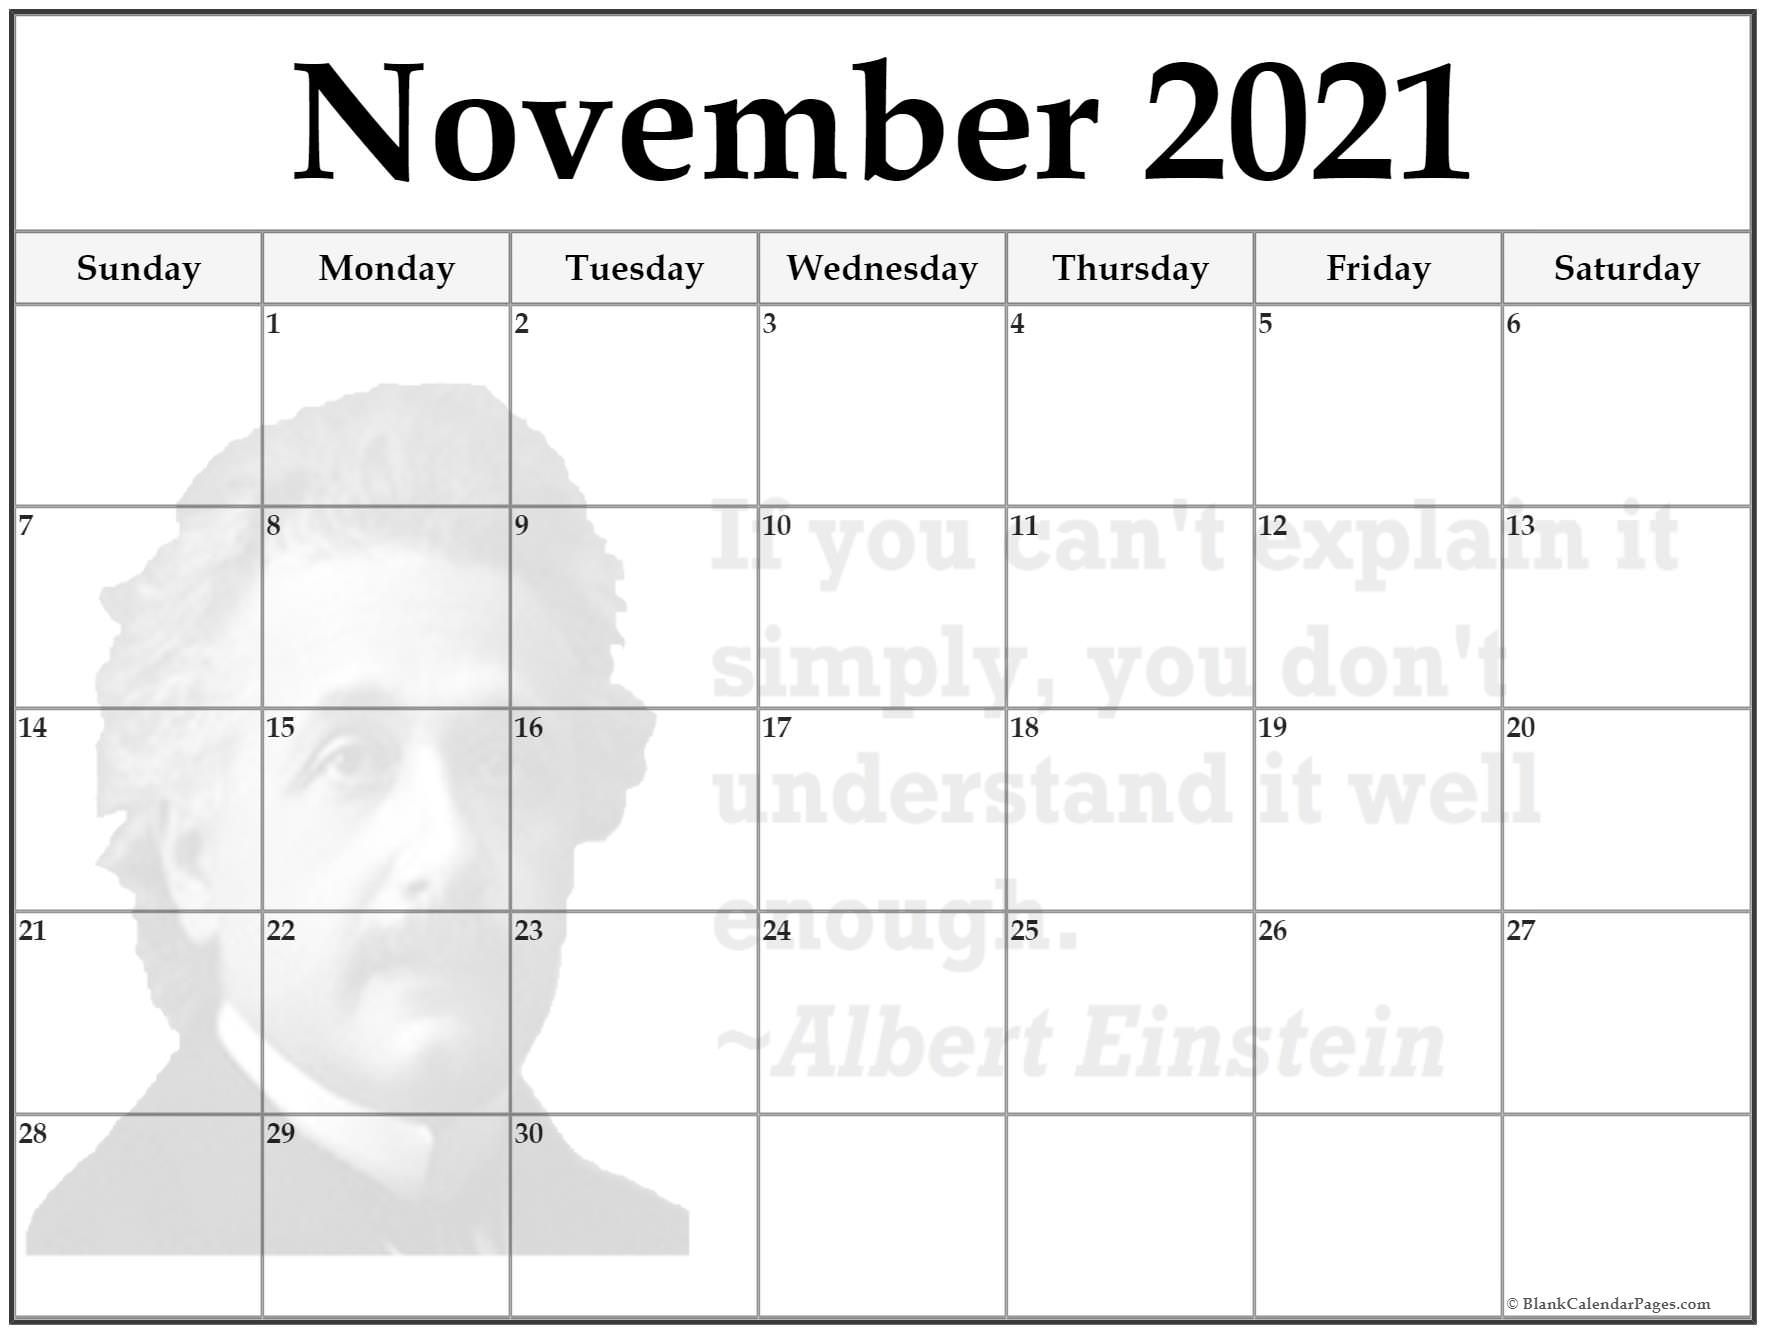 November einstein calendar 2021If you can't explain it simply, then you don't understand it well enough ~Albert Einstein